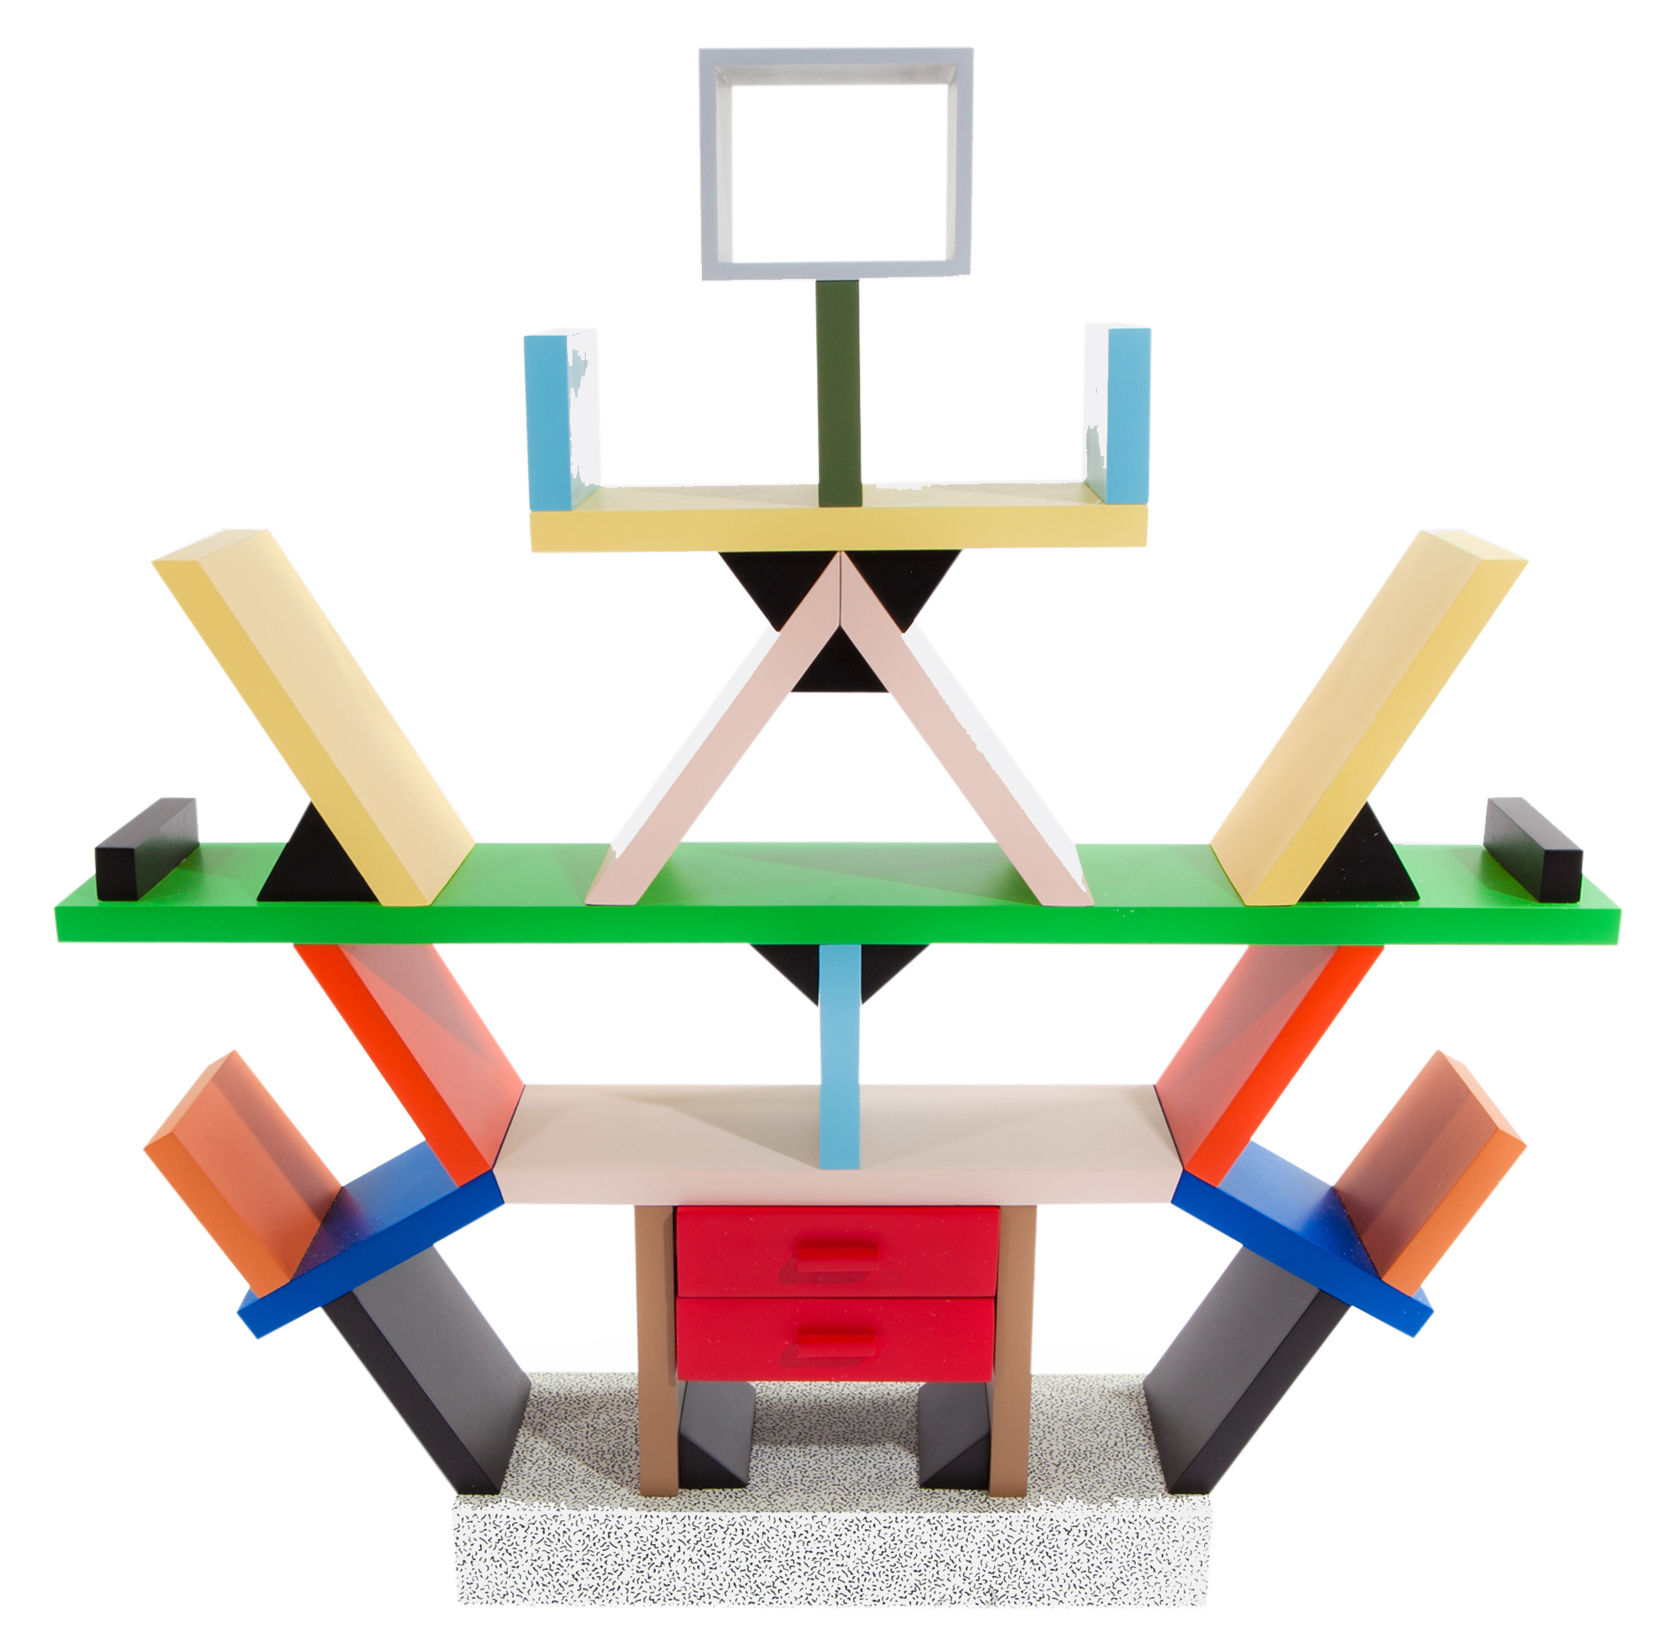 carlton libreria by ettore sottsass s paration 1981